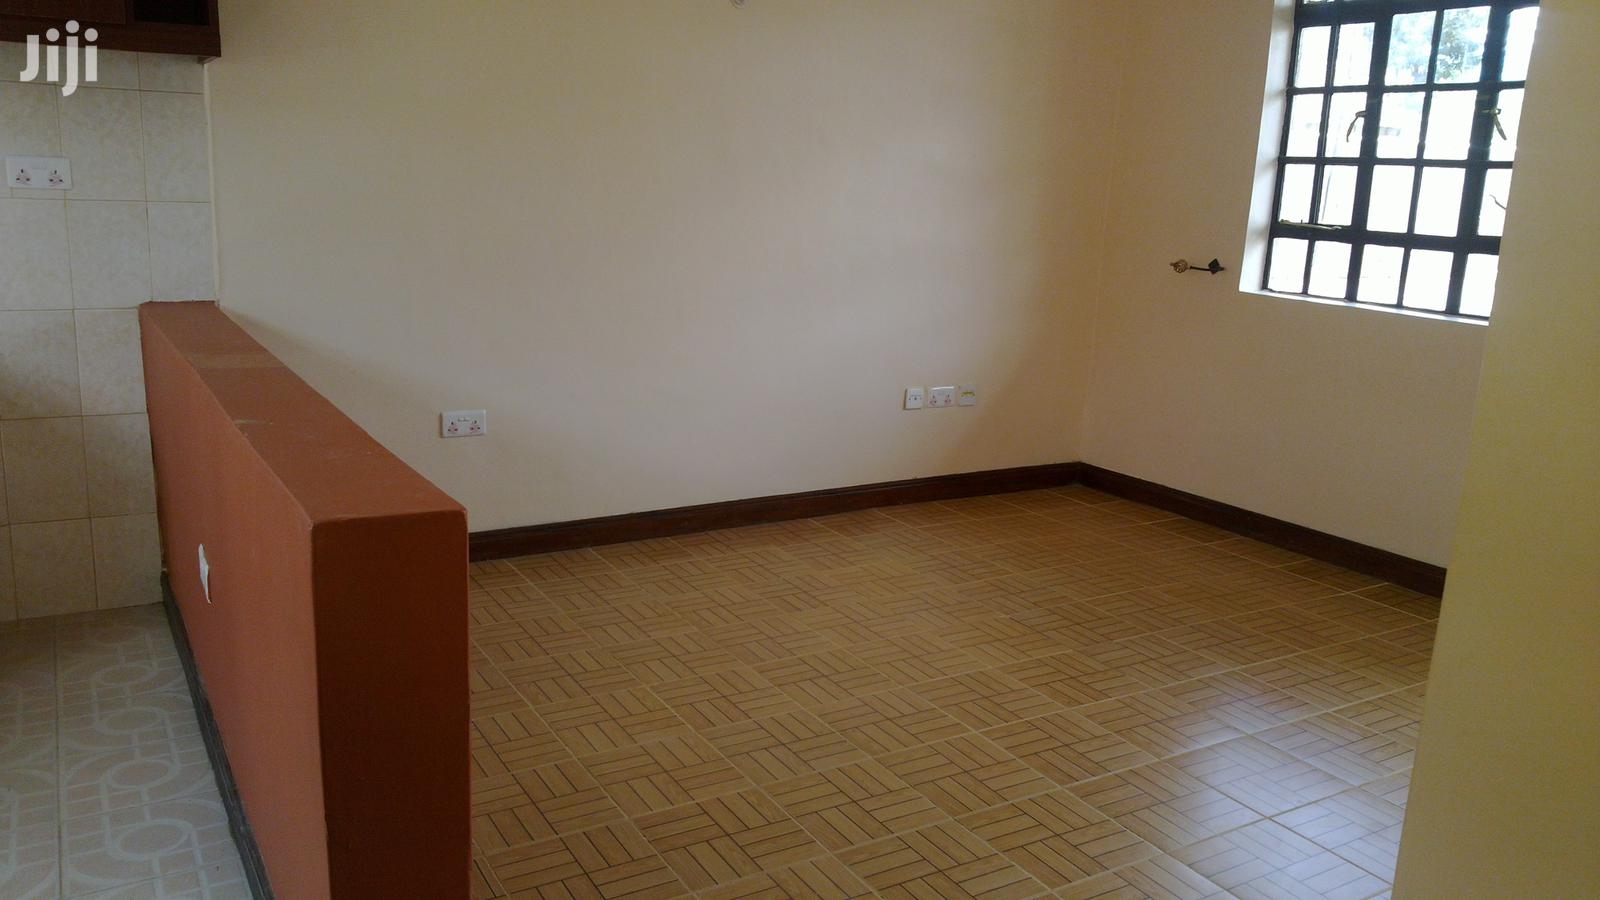 One Bedroom House For Rent - Ongata Rongai | Houses & Apartments For Rent for sale in Ongata Rongai, Kajiado, Kenya